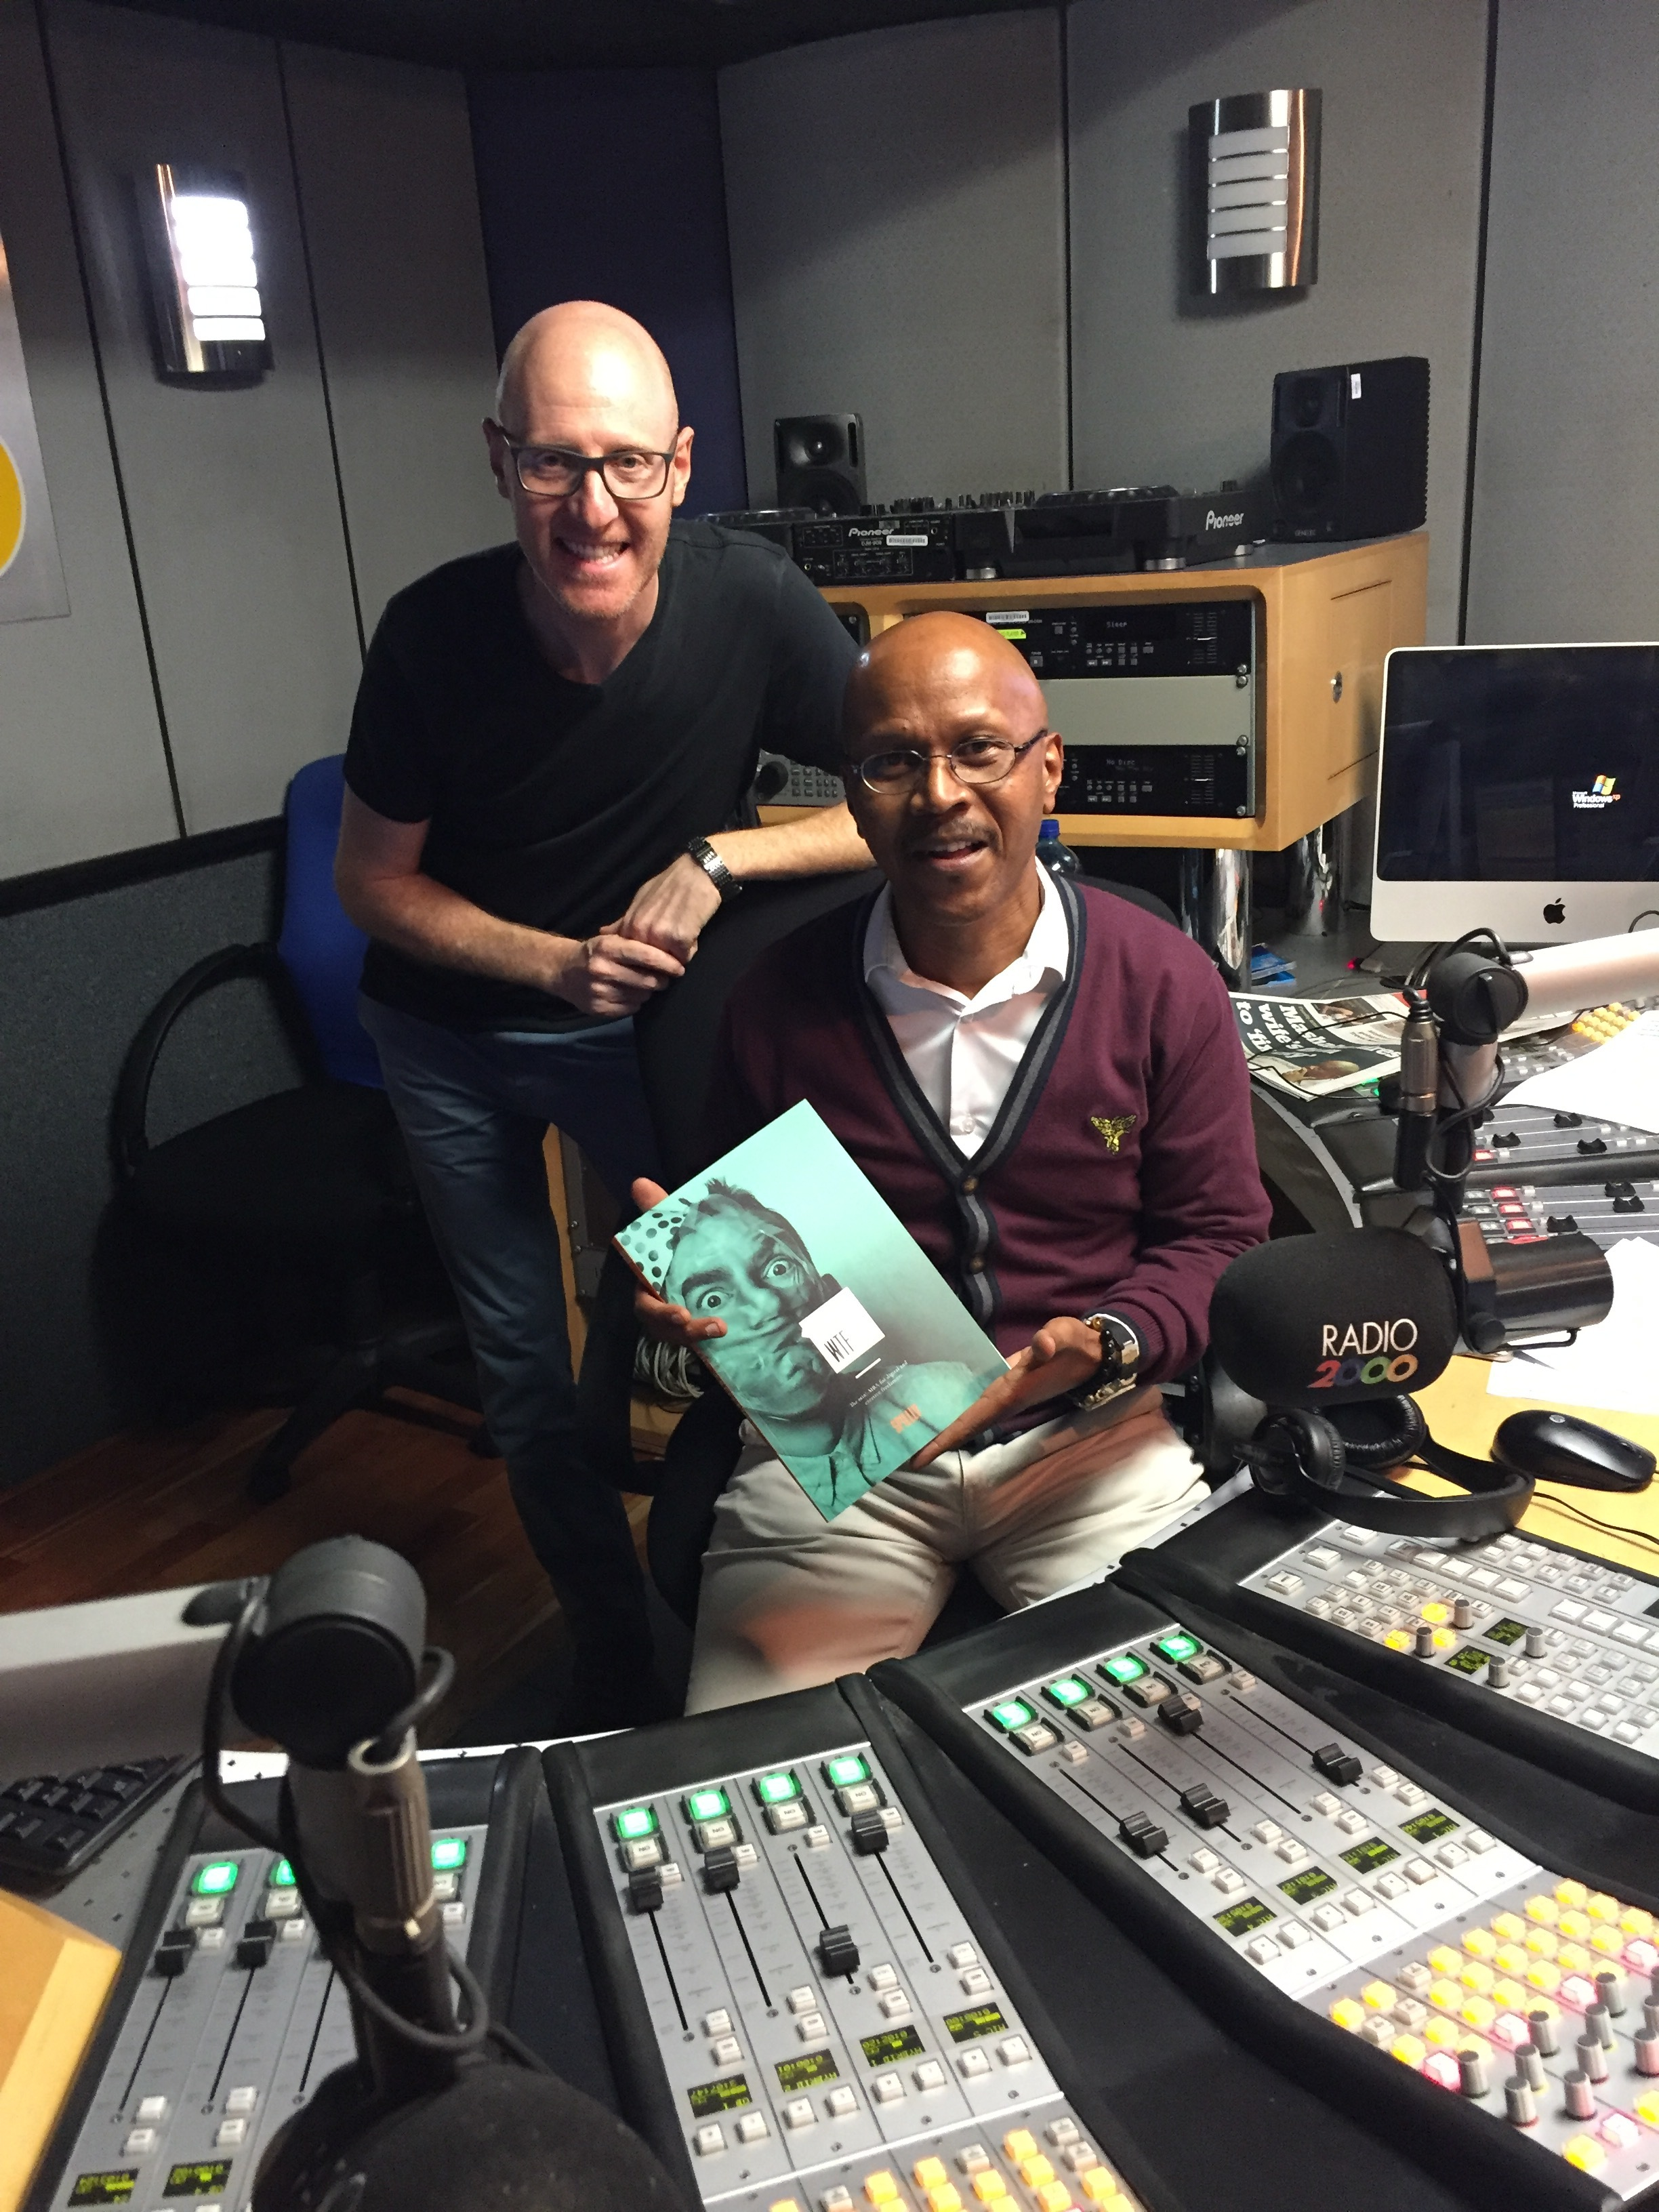 The pleasure of being on Radio 2000 with a fellow Freelancer